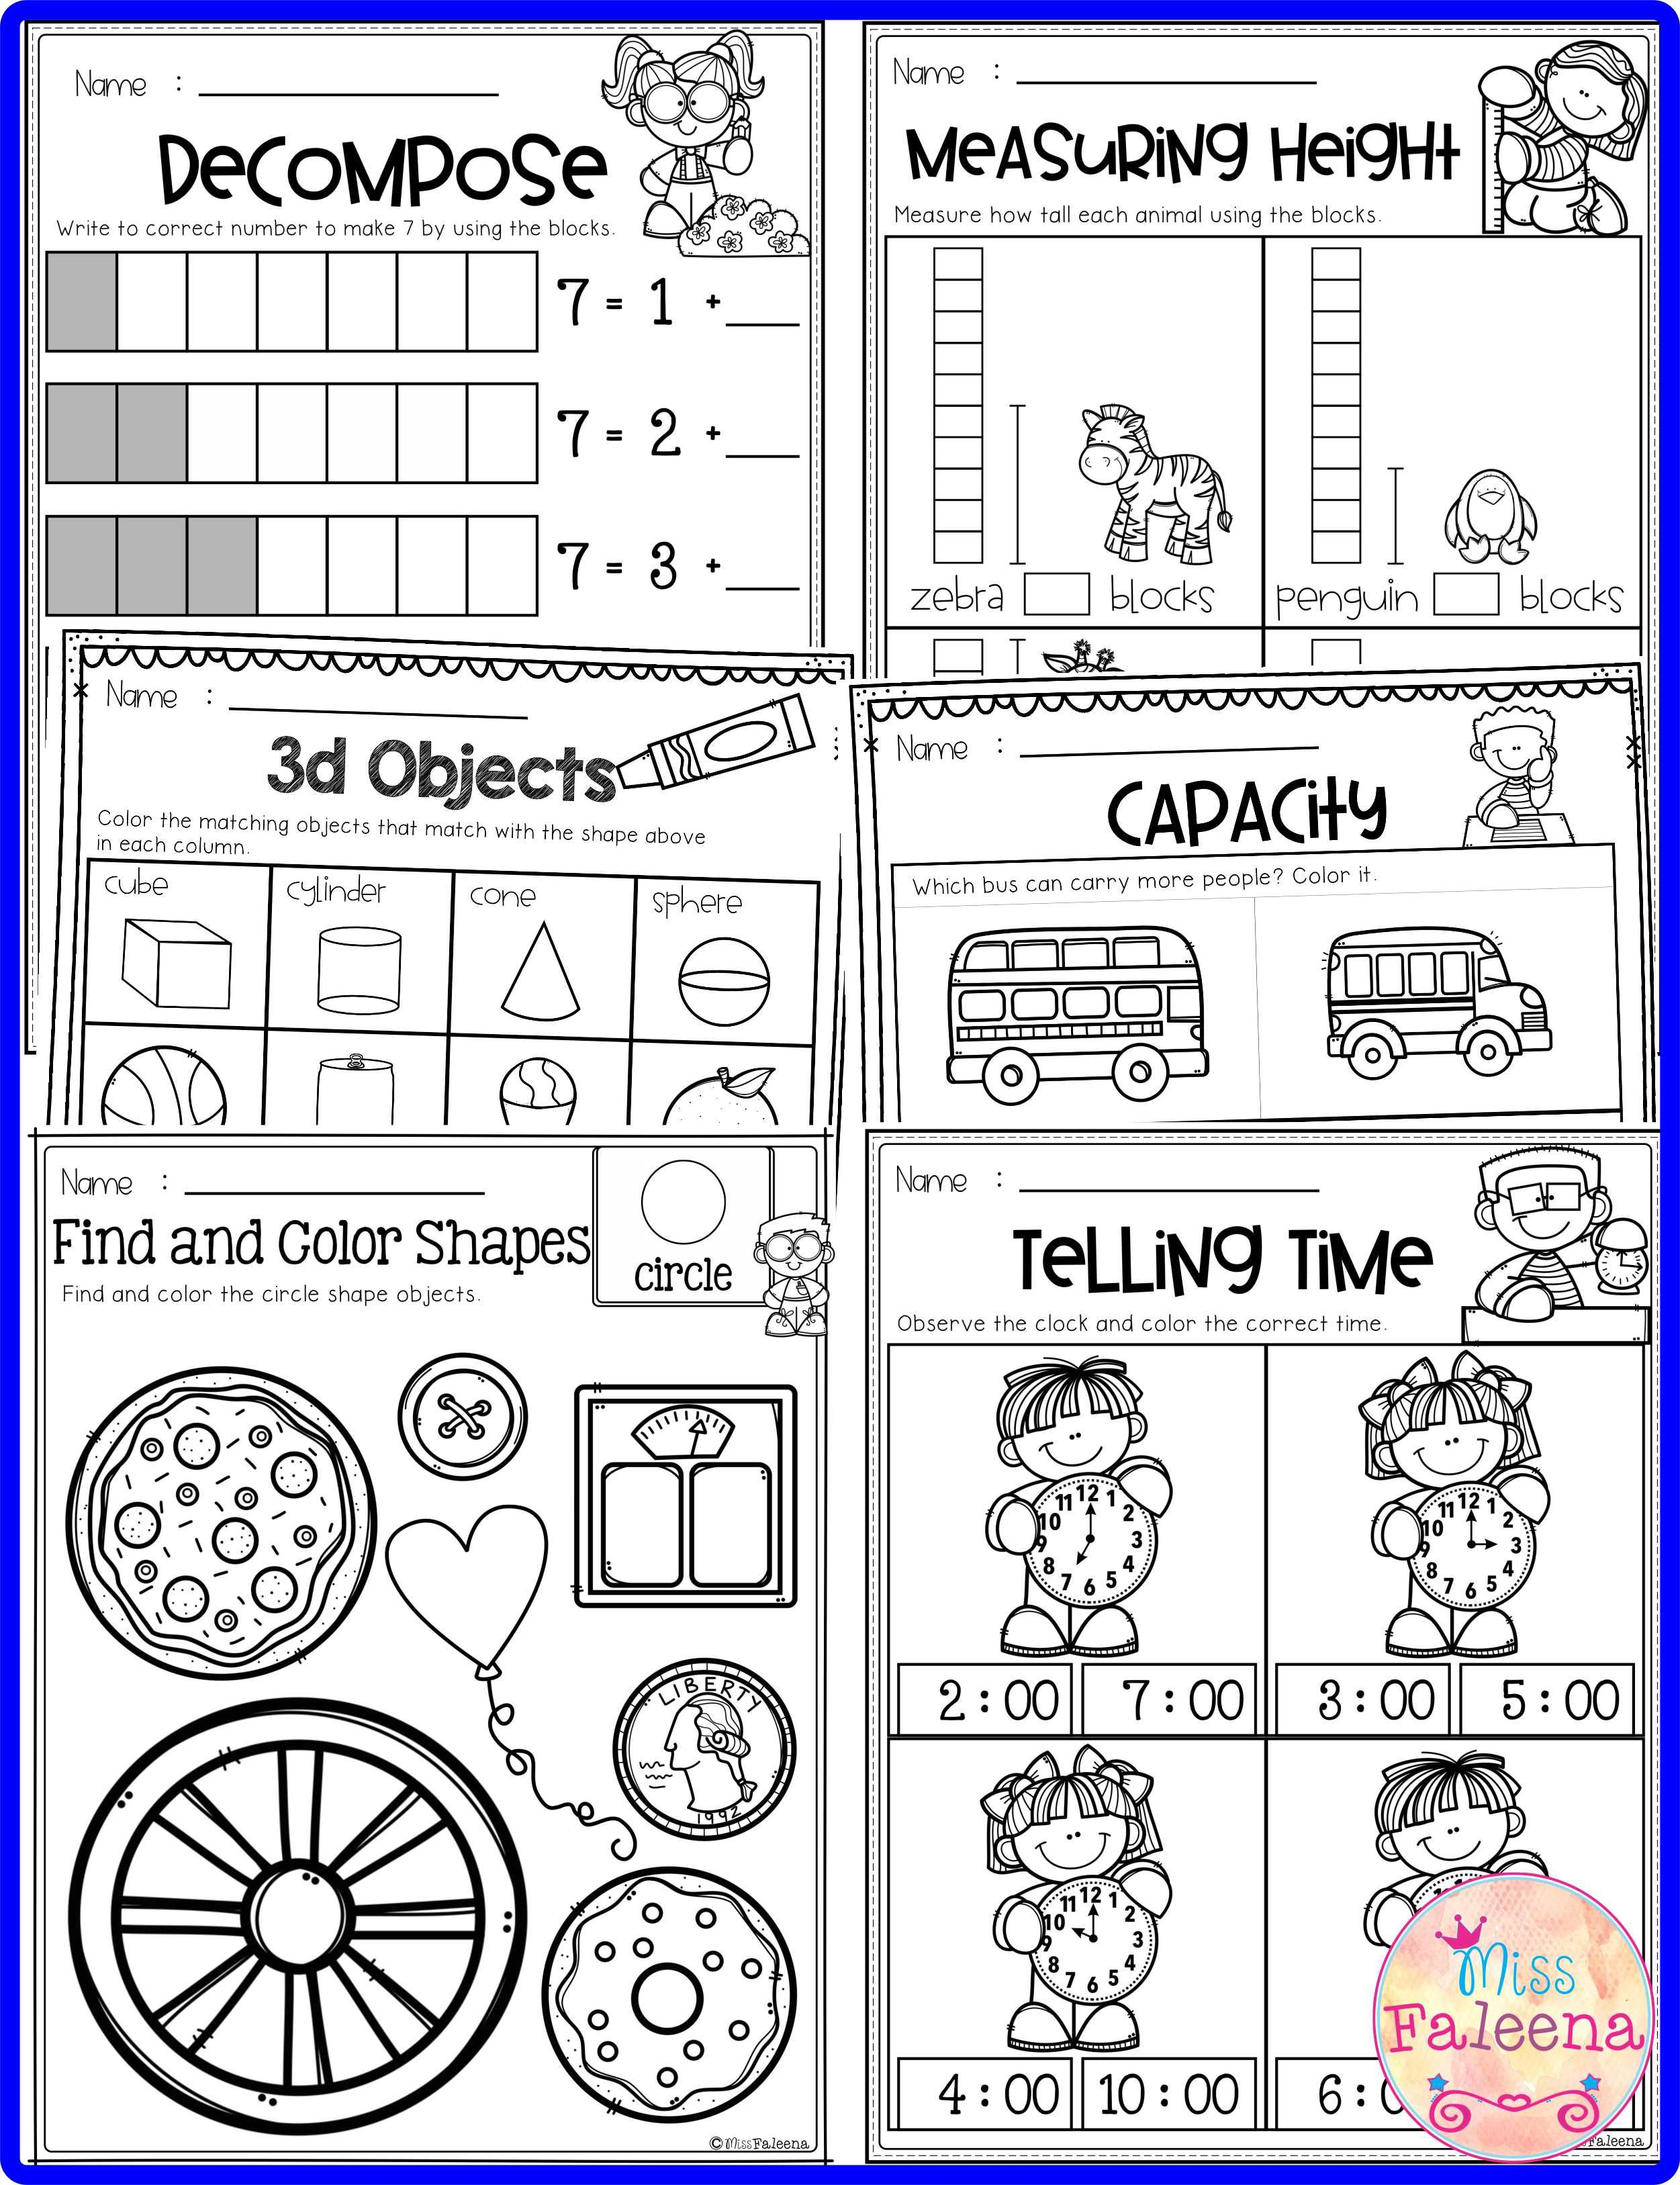 Kindergarten Math Has 120 Pages Of Math Practice Worksheets These Pages Are Great For Kindergarten And First Grade Students Kindergarten Kindergarten Math W [ 3254 x 2502 Pixel ]